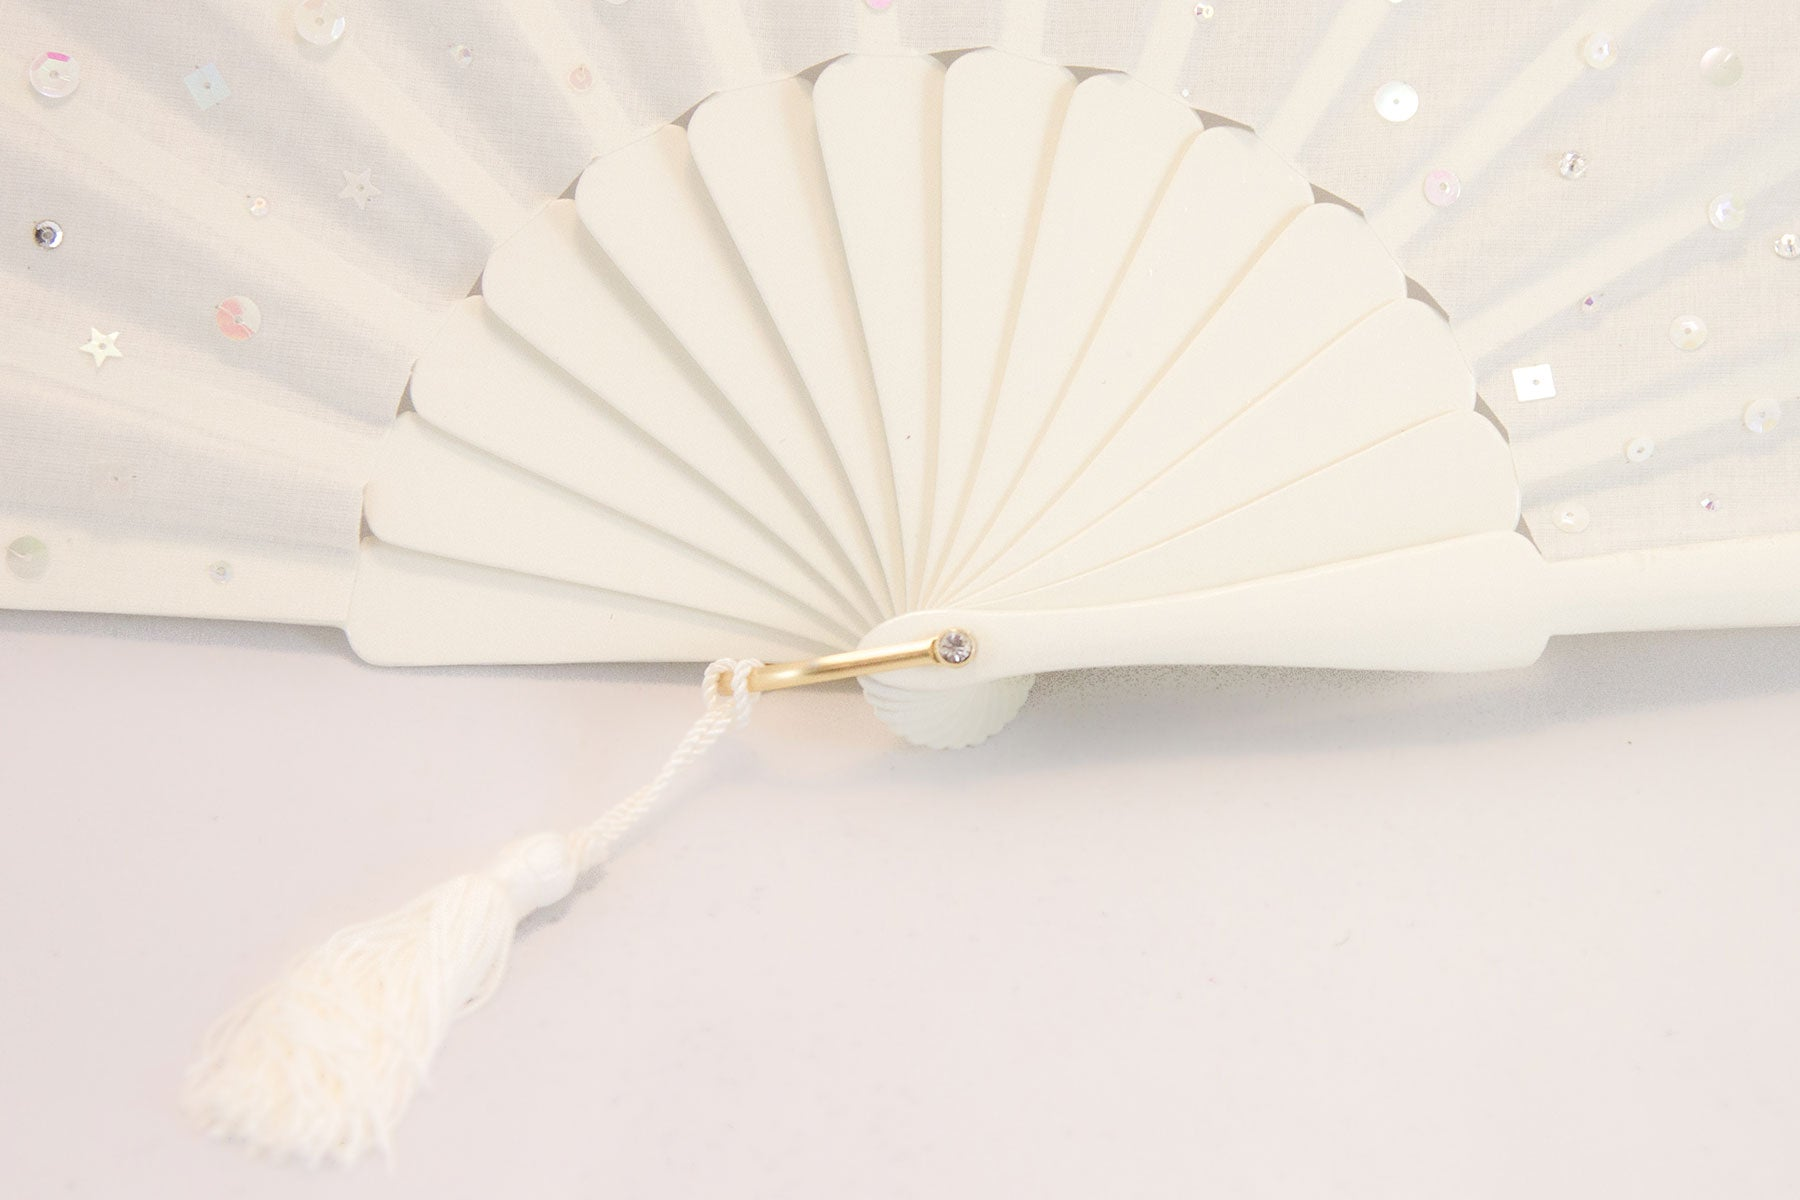 Handmade fan adorned with hand sewn sequins on a cream painted Danta wood frame close up